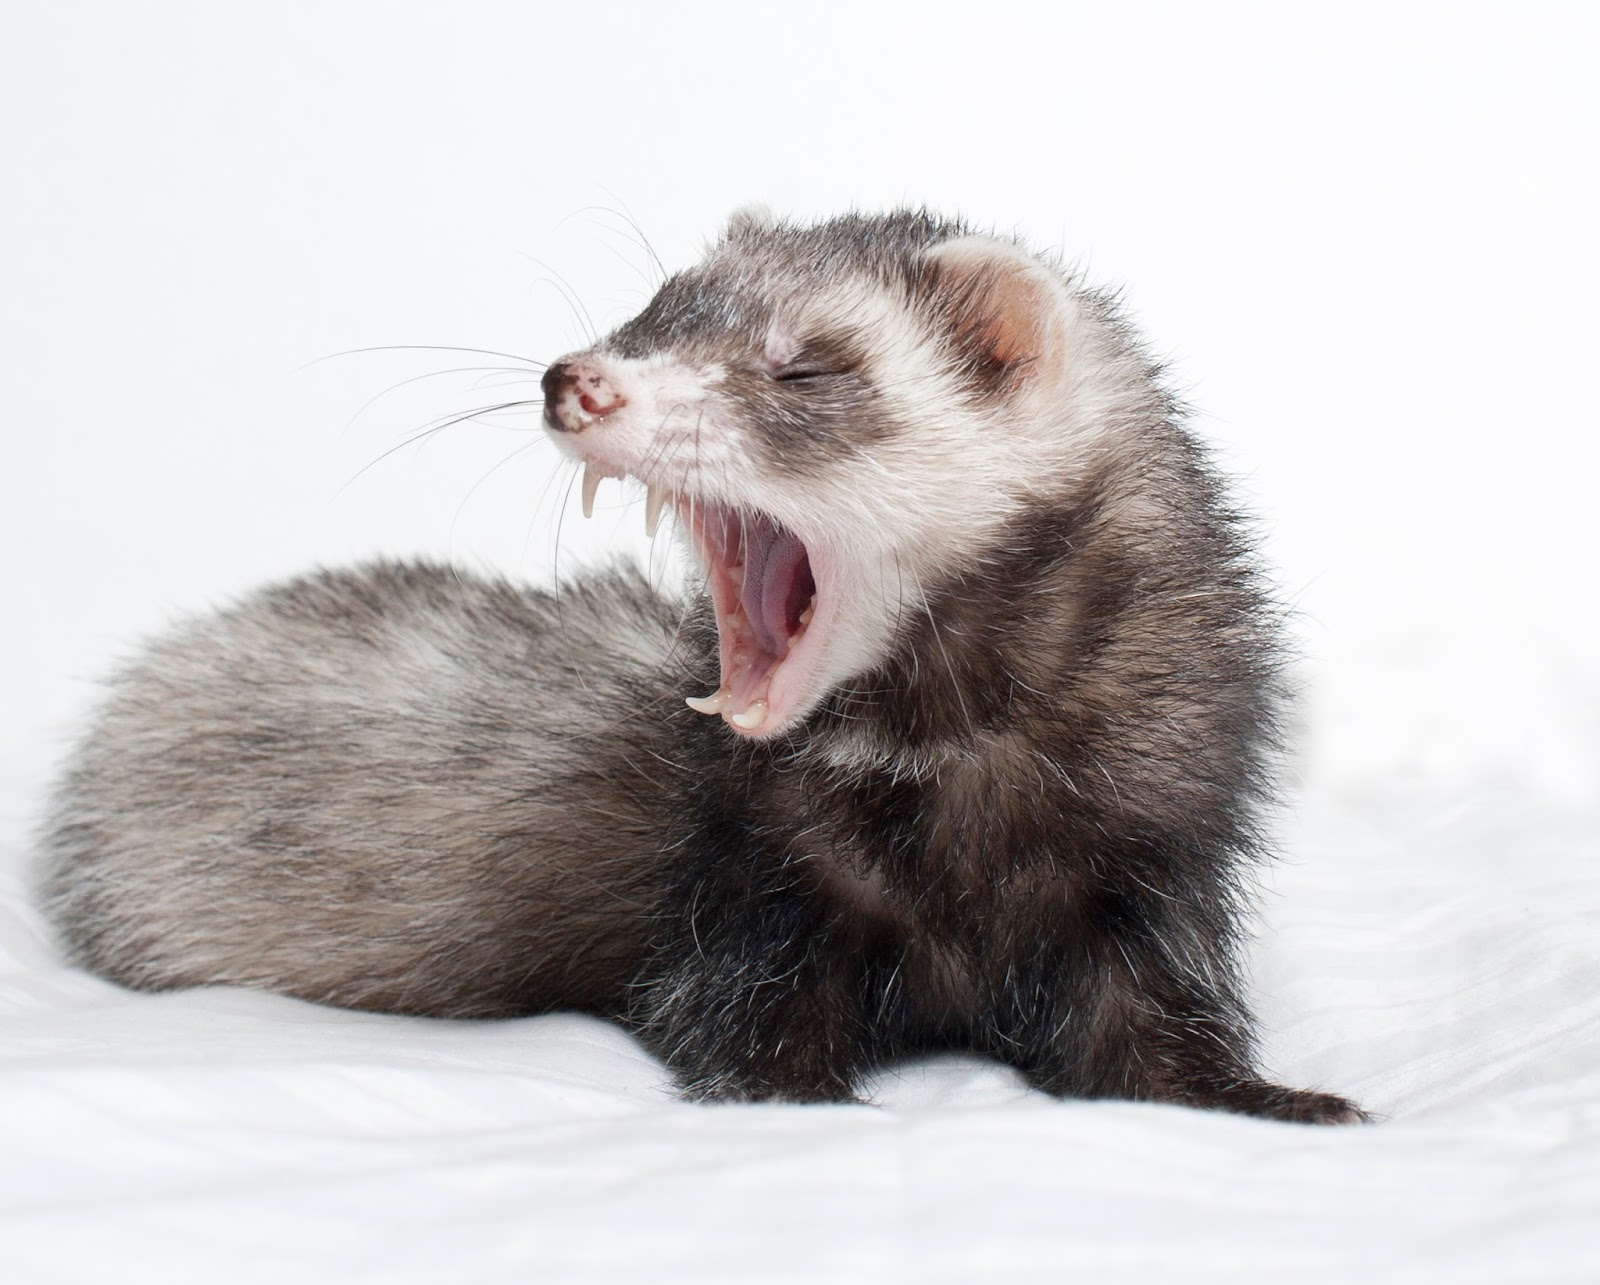 Every Day Is Special: April 2 – National Ferret Day